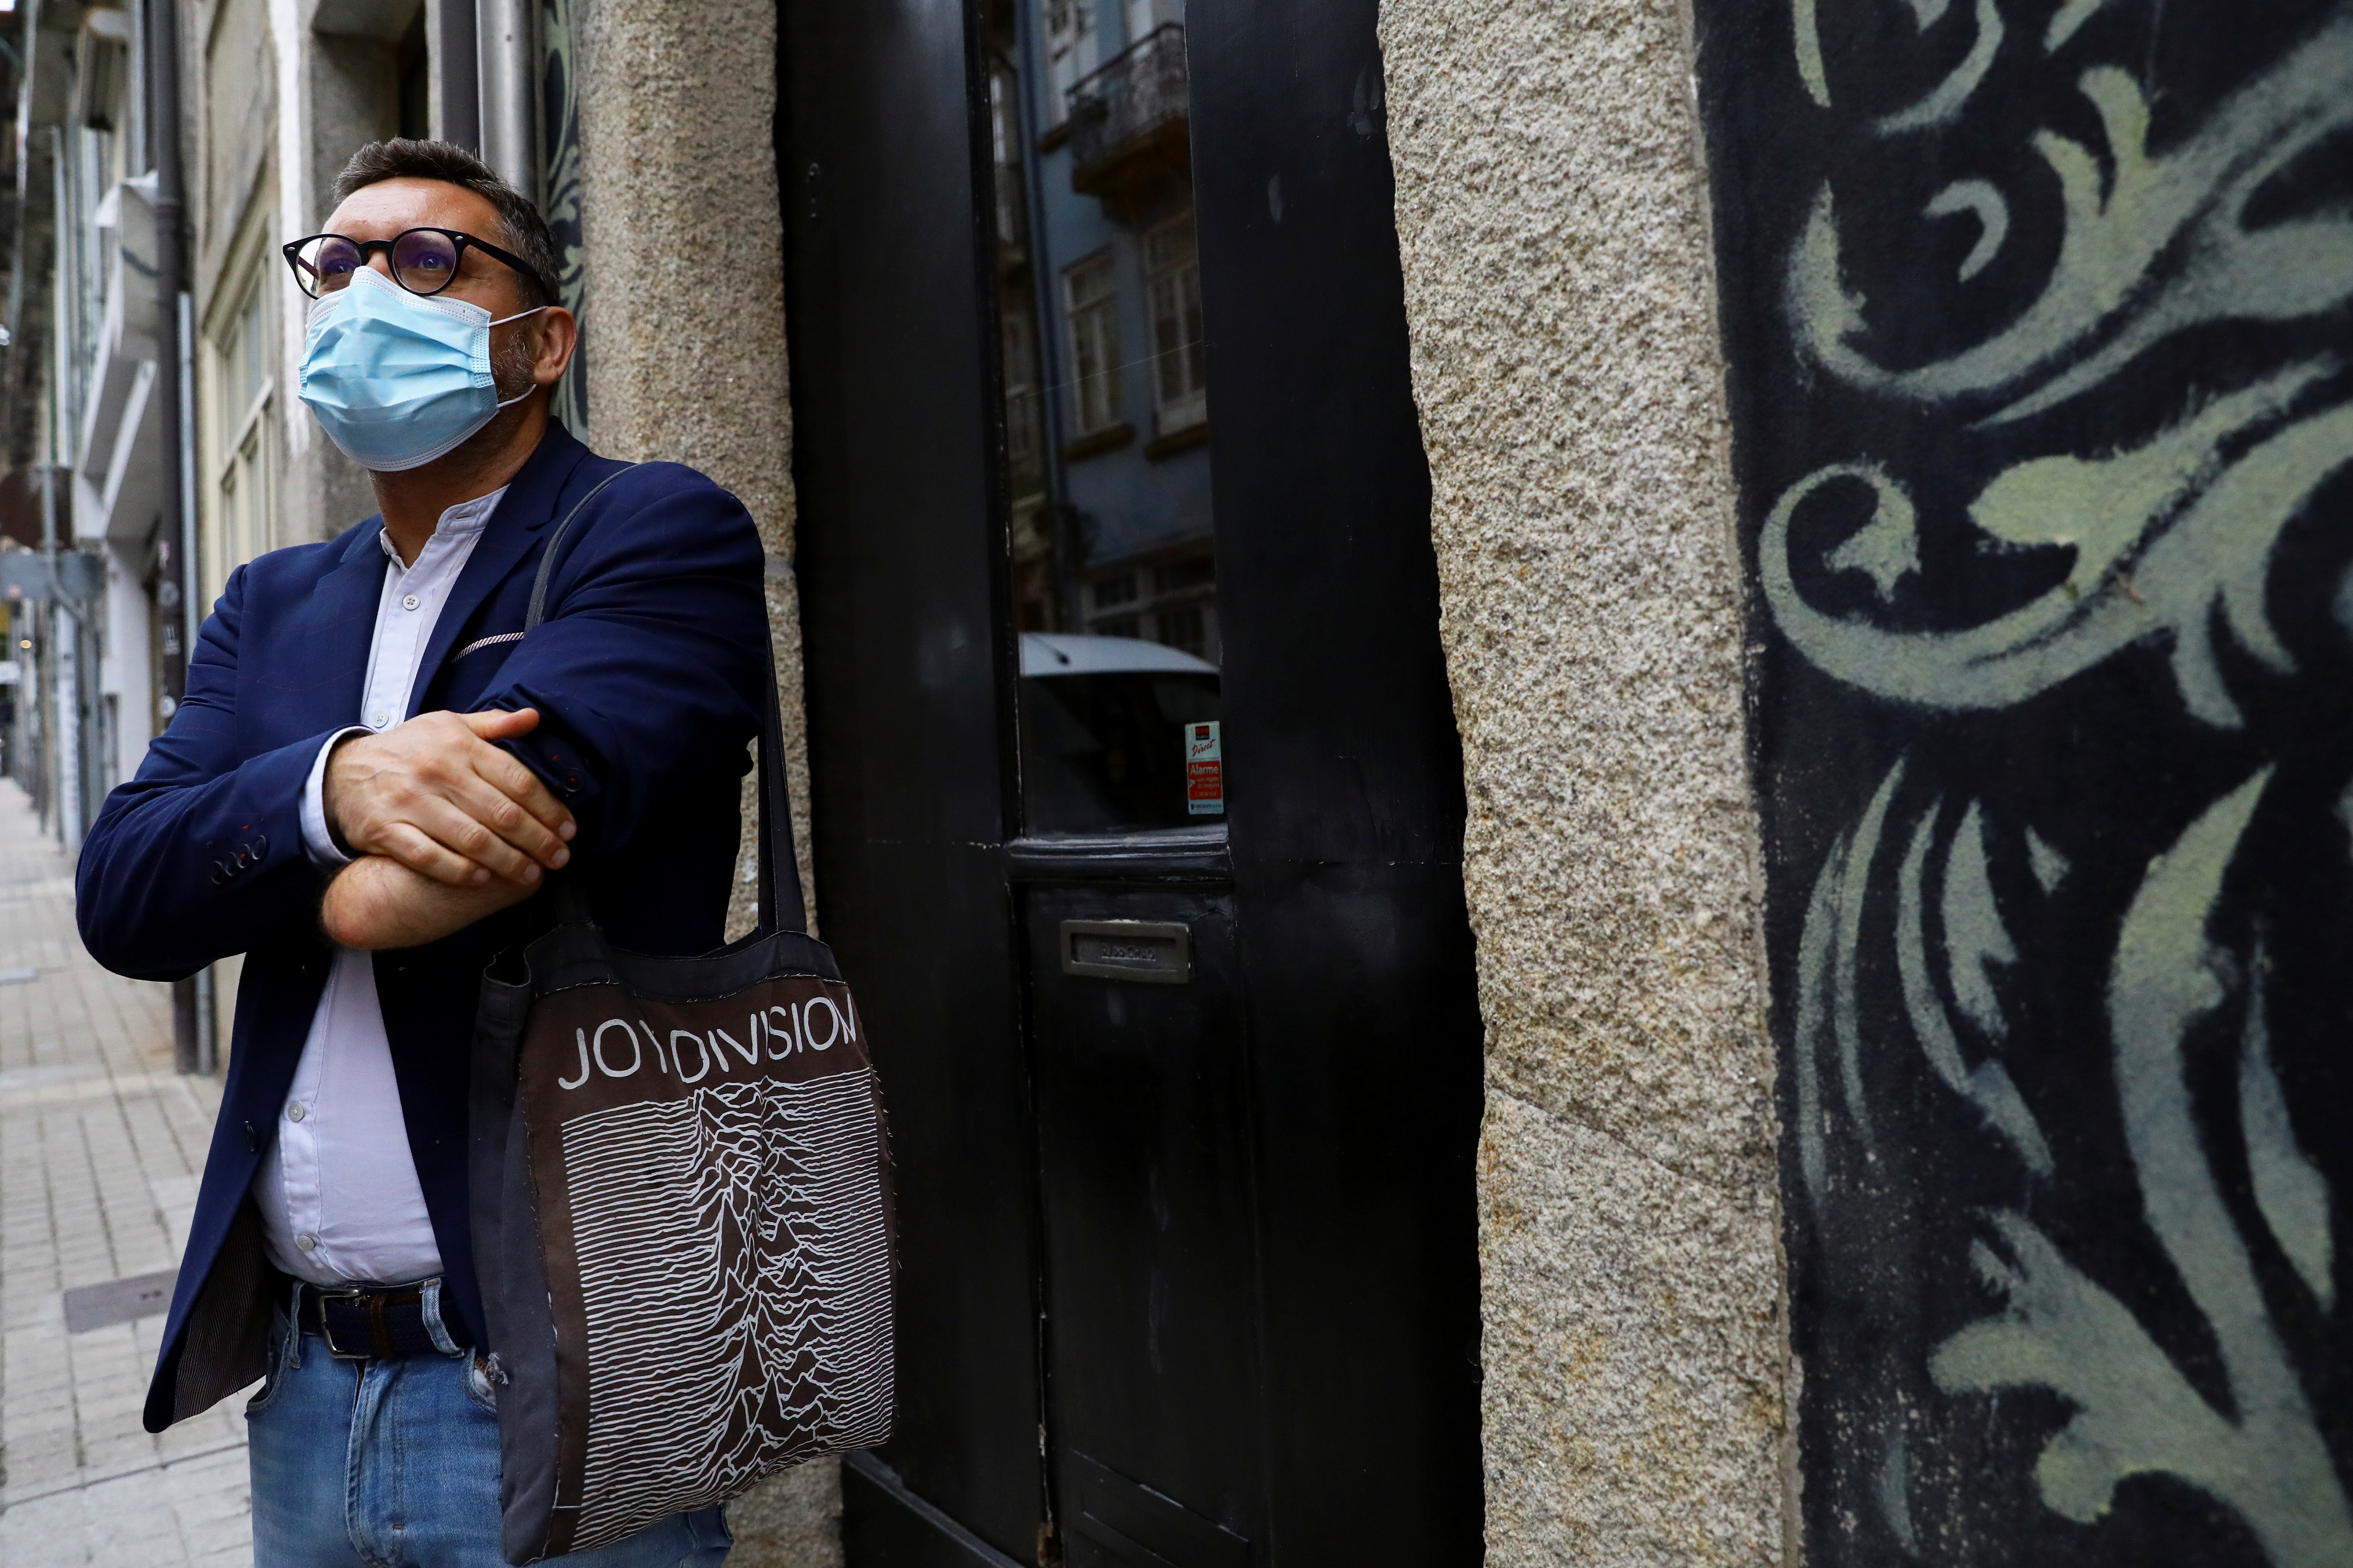 Rui Brito, a worker with a disability who lost his arm in a machinery accident more than 30 years ago, stands  outside a cafe after work amid the coronavirus disease (COVID-19) pandemic in Porto, Portugal, July 20, 2021. Picture taken July 20, 2021. REUTERS/Violeta Santos Moura